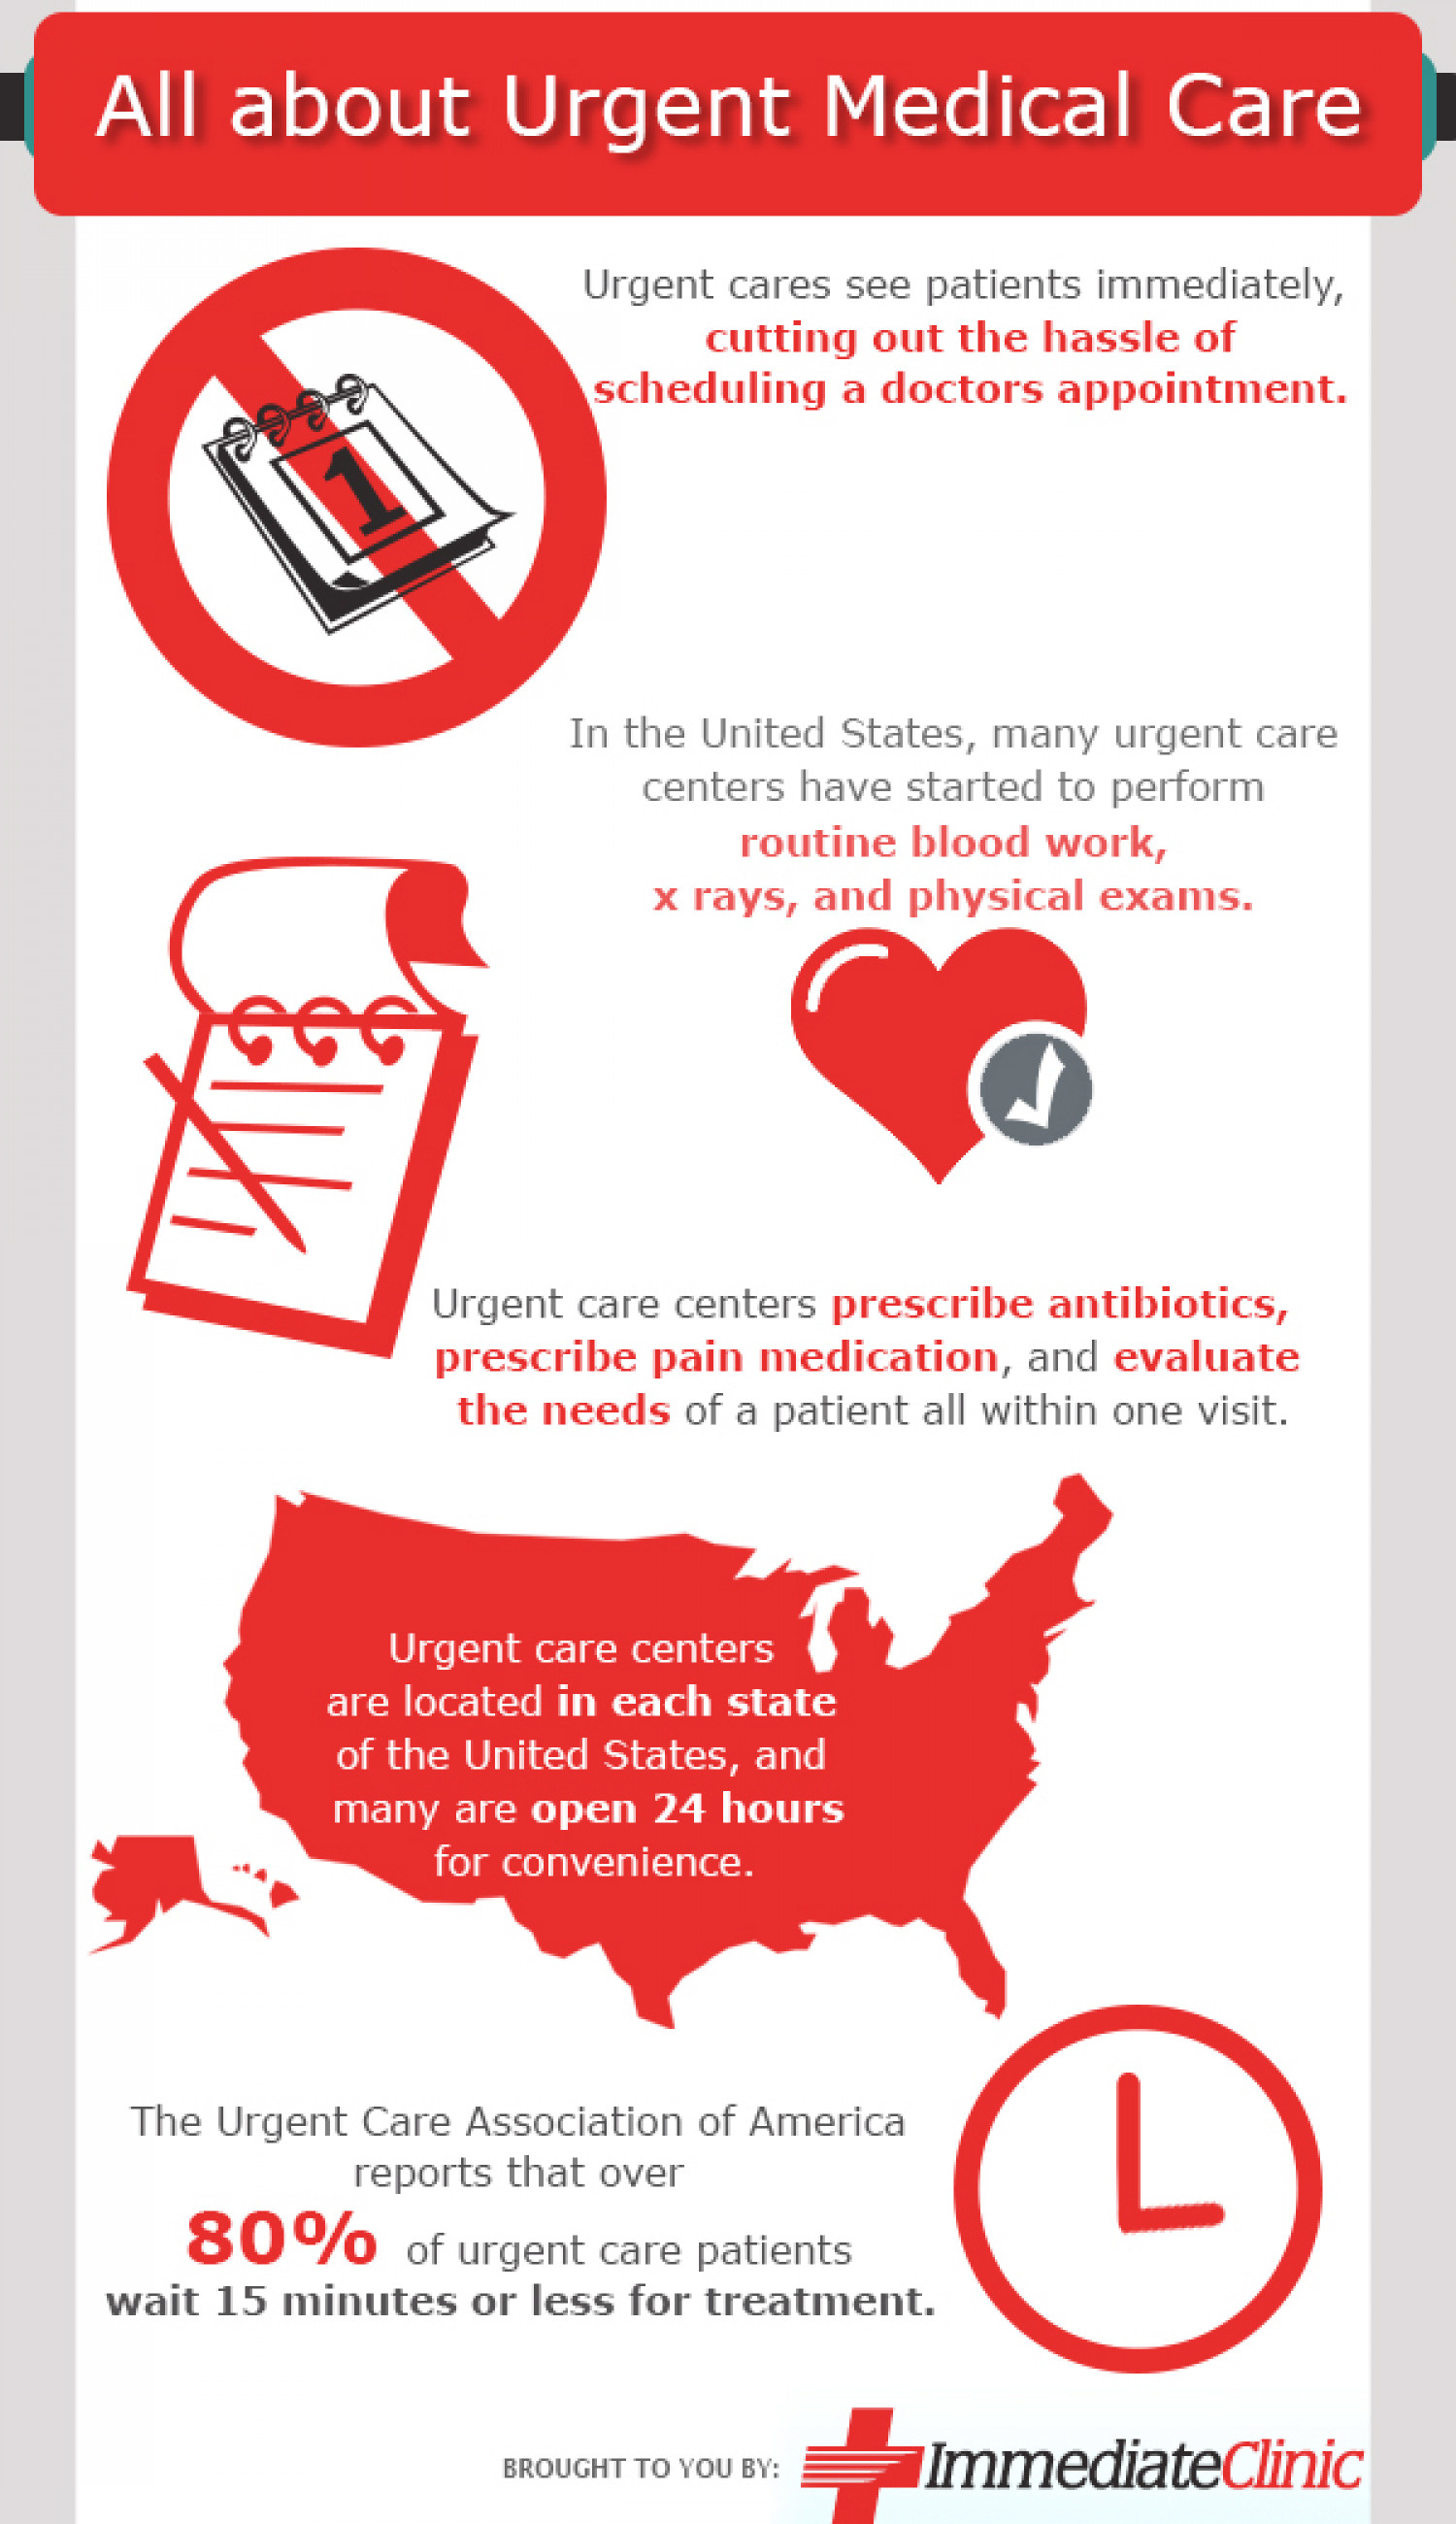 All About Urgent Medical Care Infographic